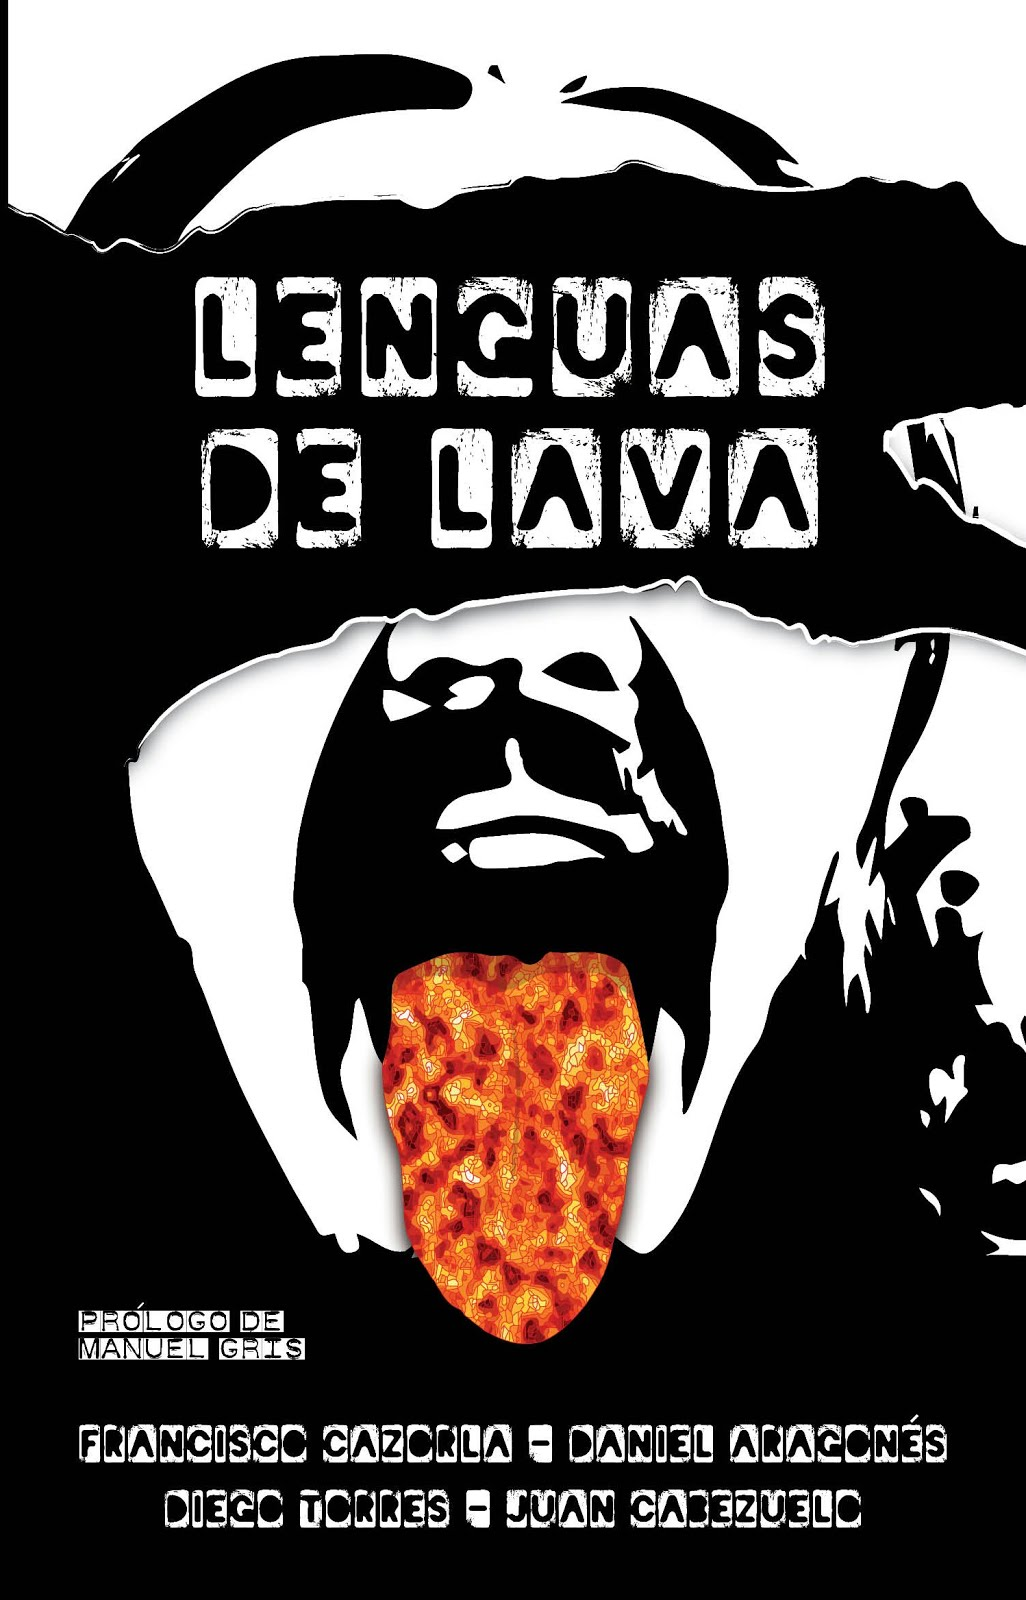 Lenguas de lava